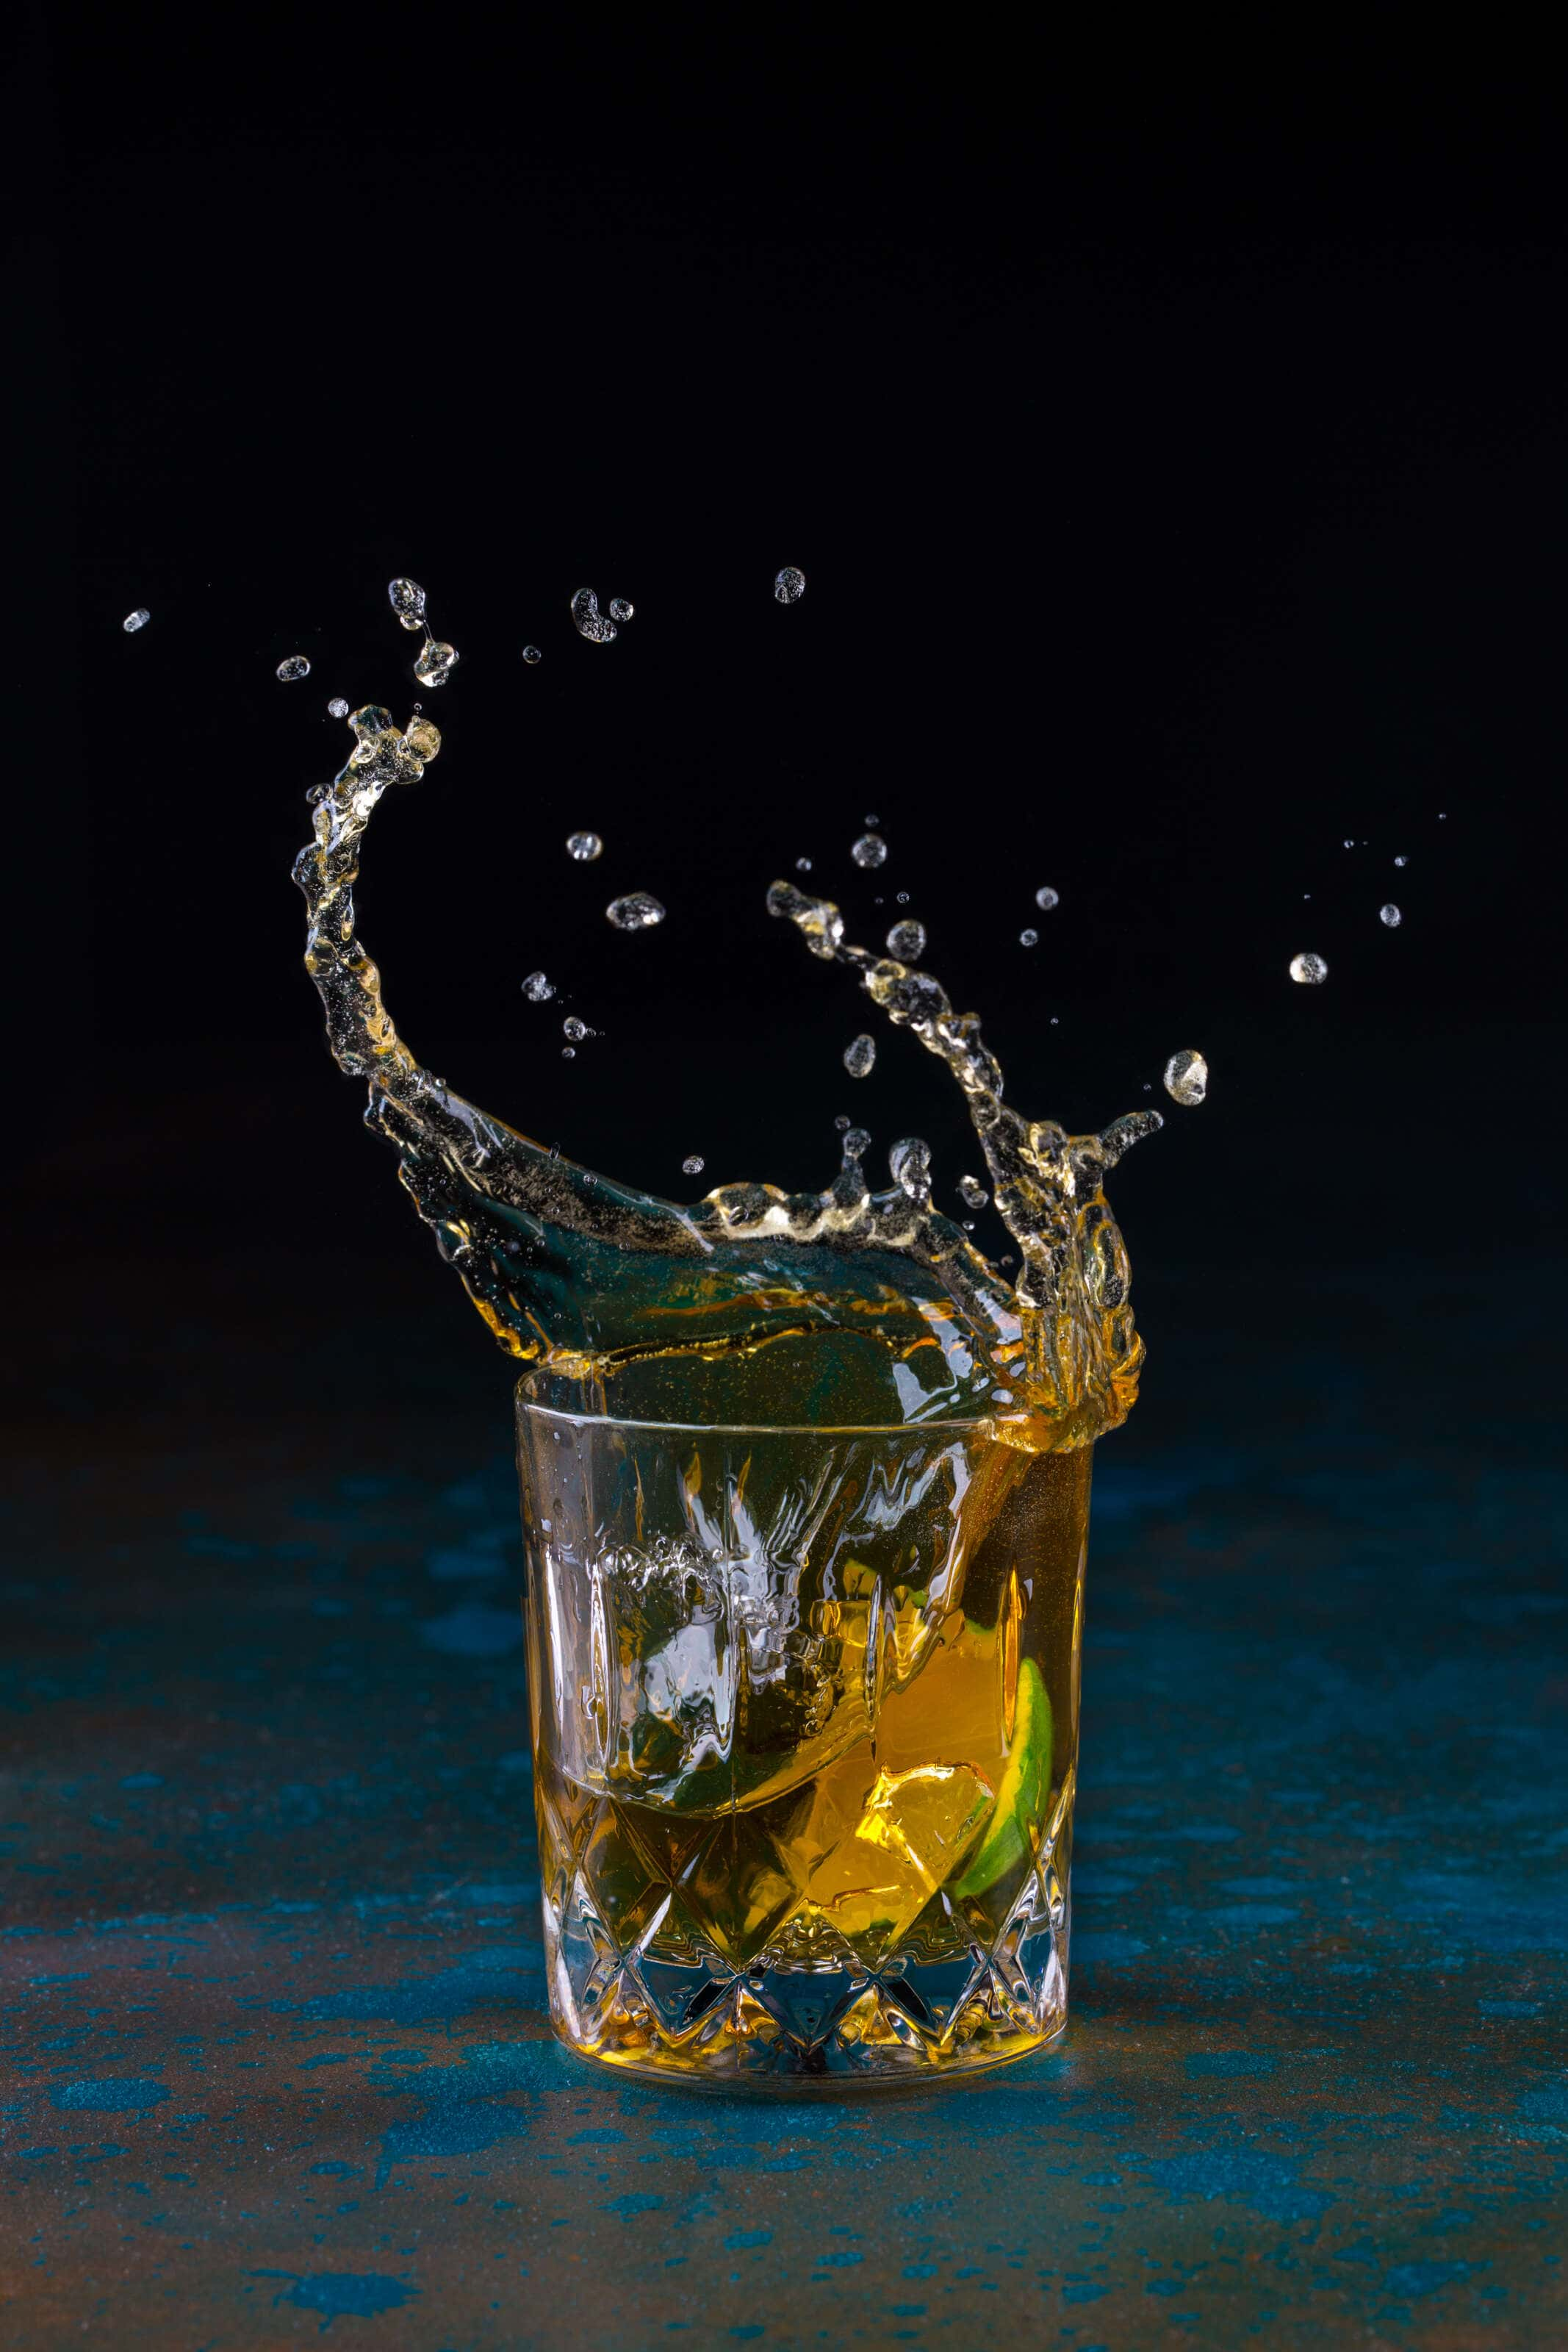 rum cocktail with a lime being dropped into it causing a splash.